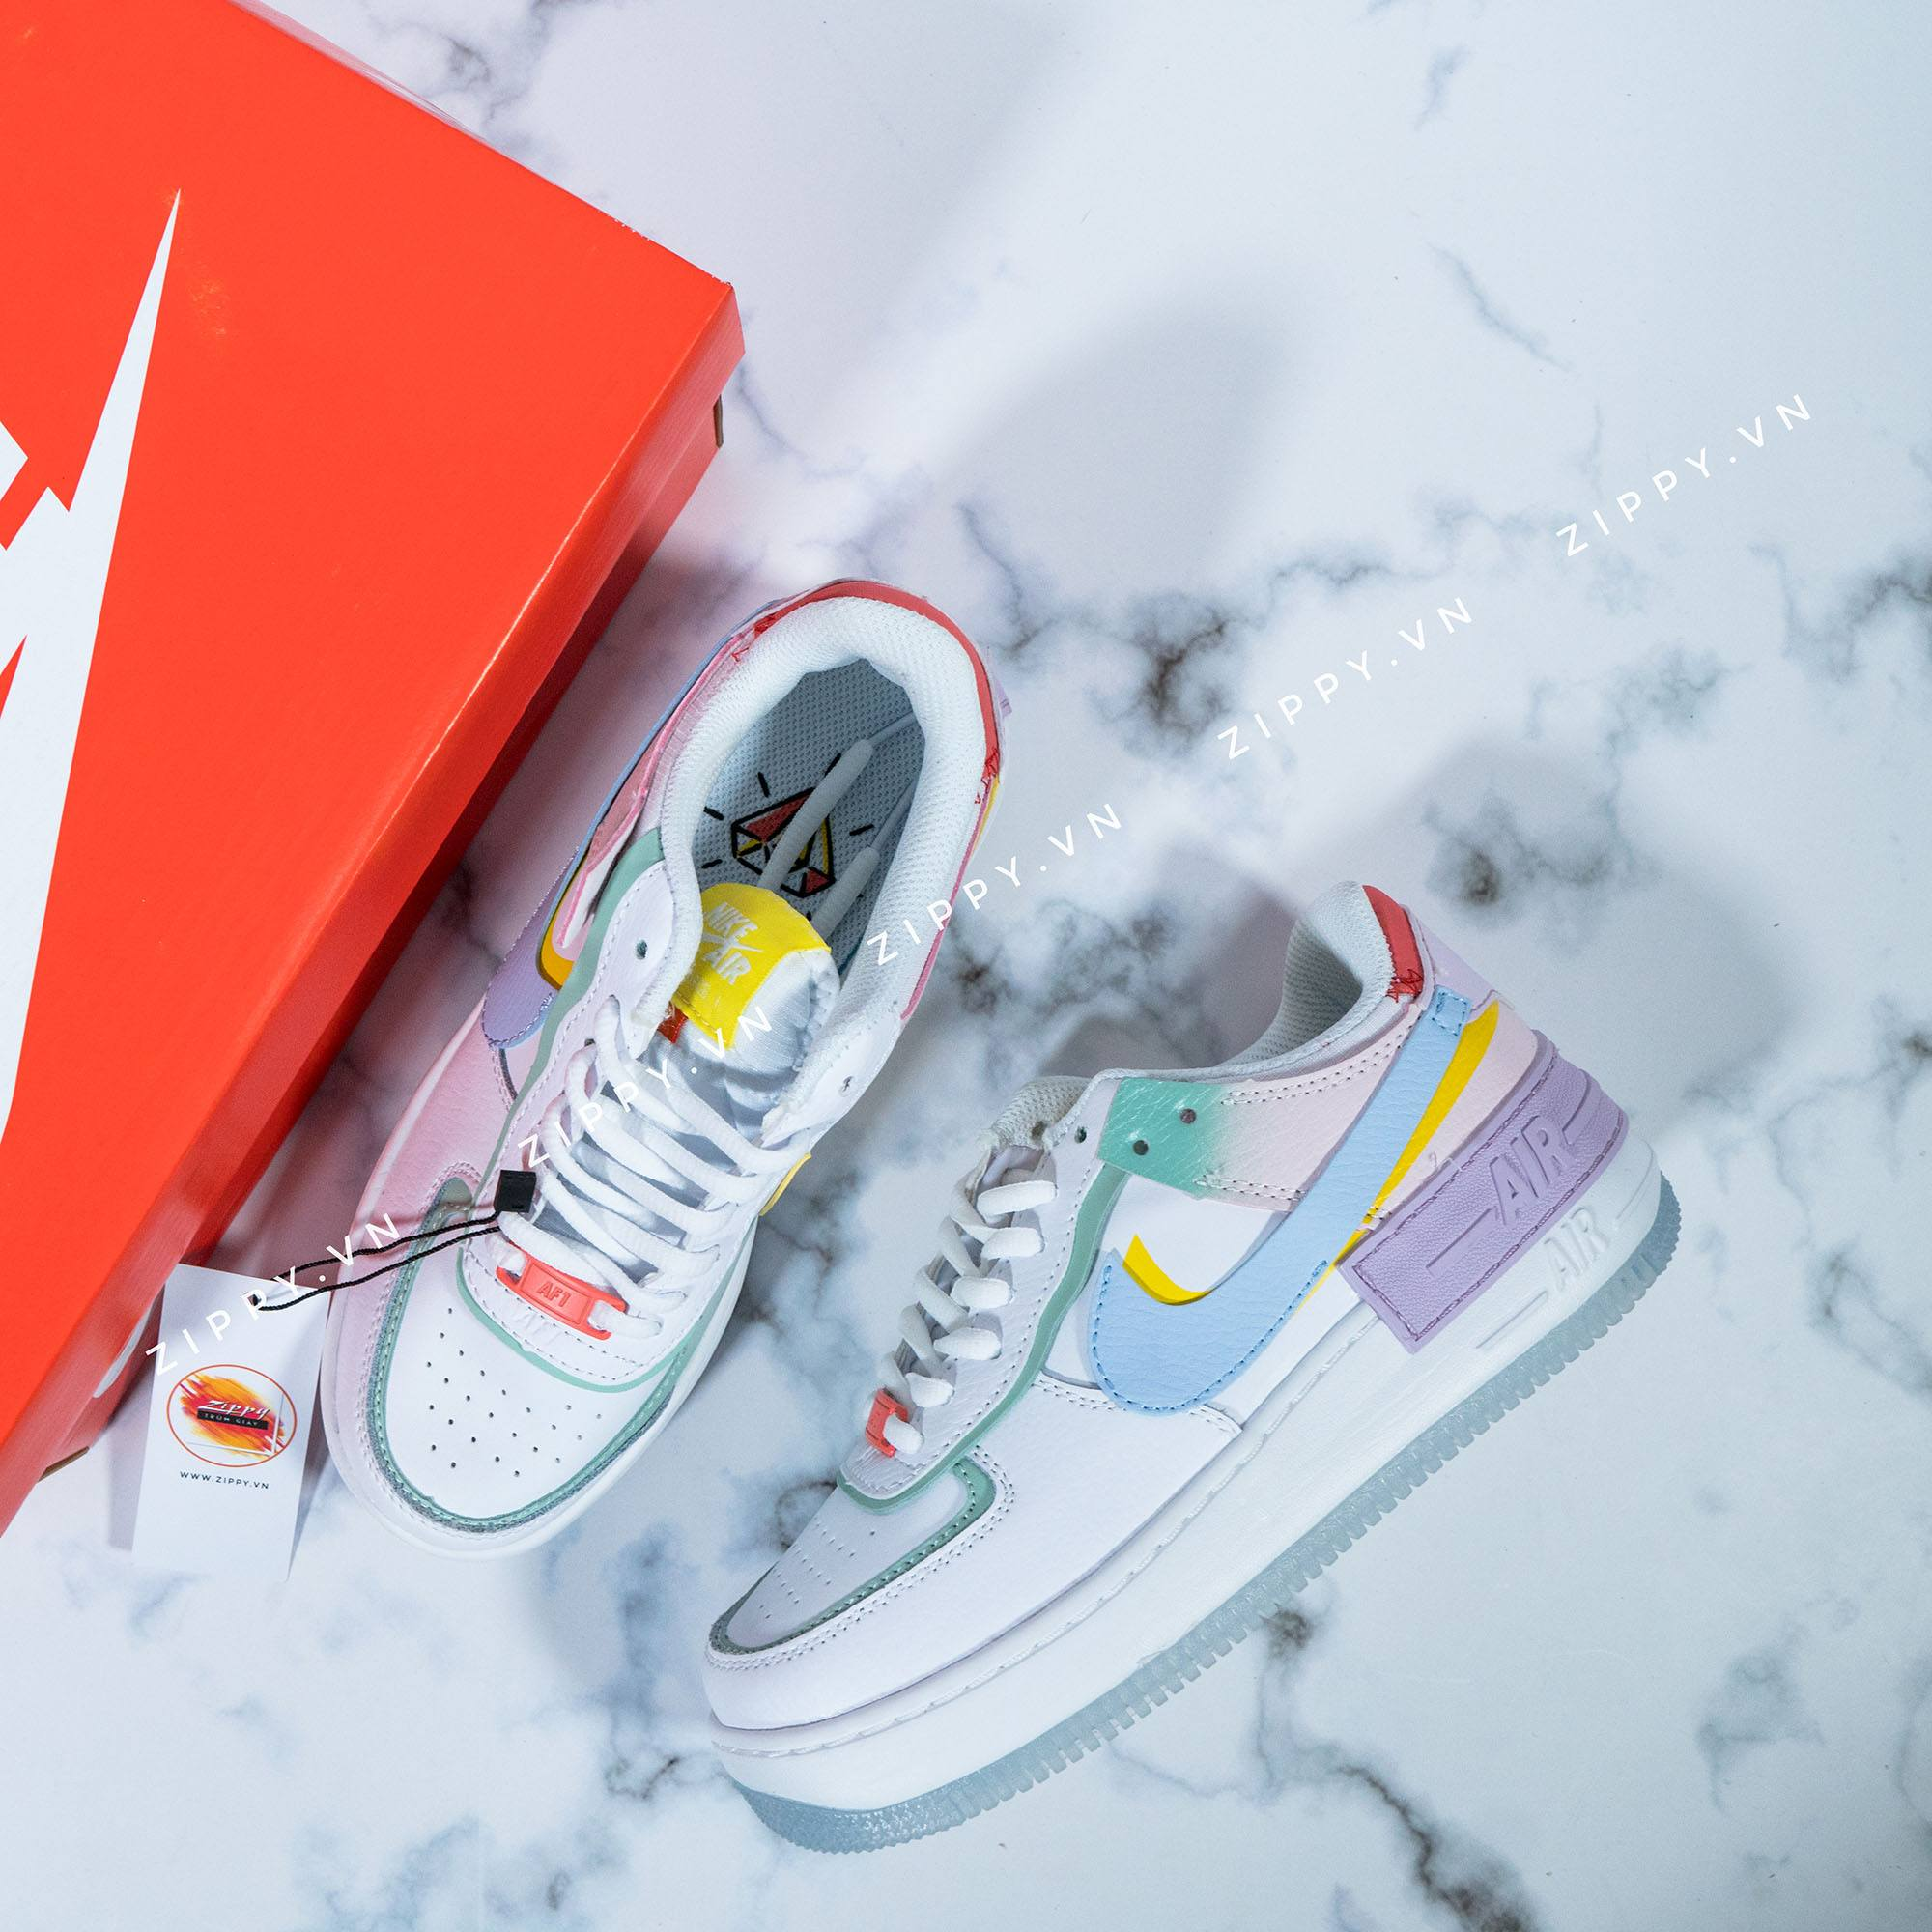 Air Force 1 Shadow Mau White Hydrogen Blue Purple Zippy Store Nike air force 1 shadow pastel summit white ghost trainers new various sizes. air force 1 shadow mau white hydrogen blue purple